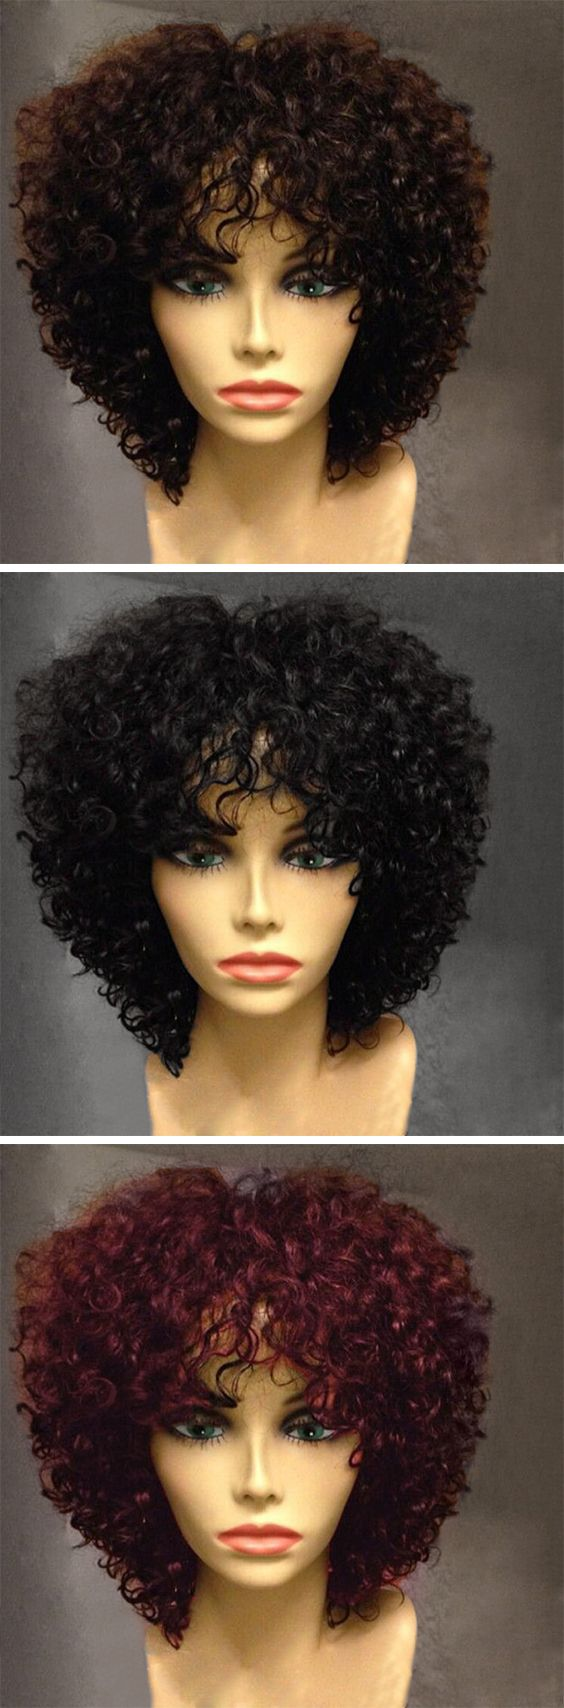 Short Side Fringe Fluffy Afro Curly Synthetic Wig Natural Hair Styles Wig Hairstyles Hair Styles